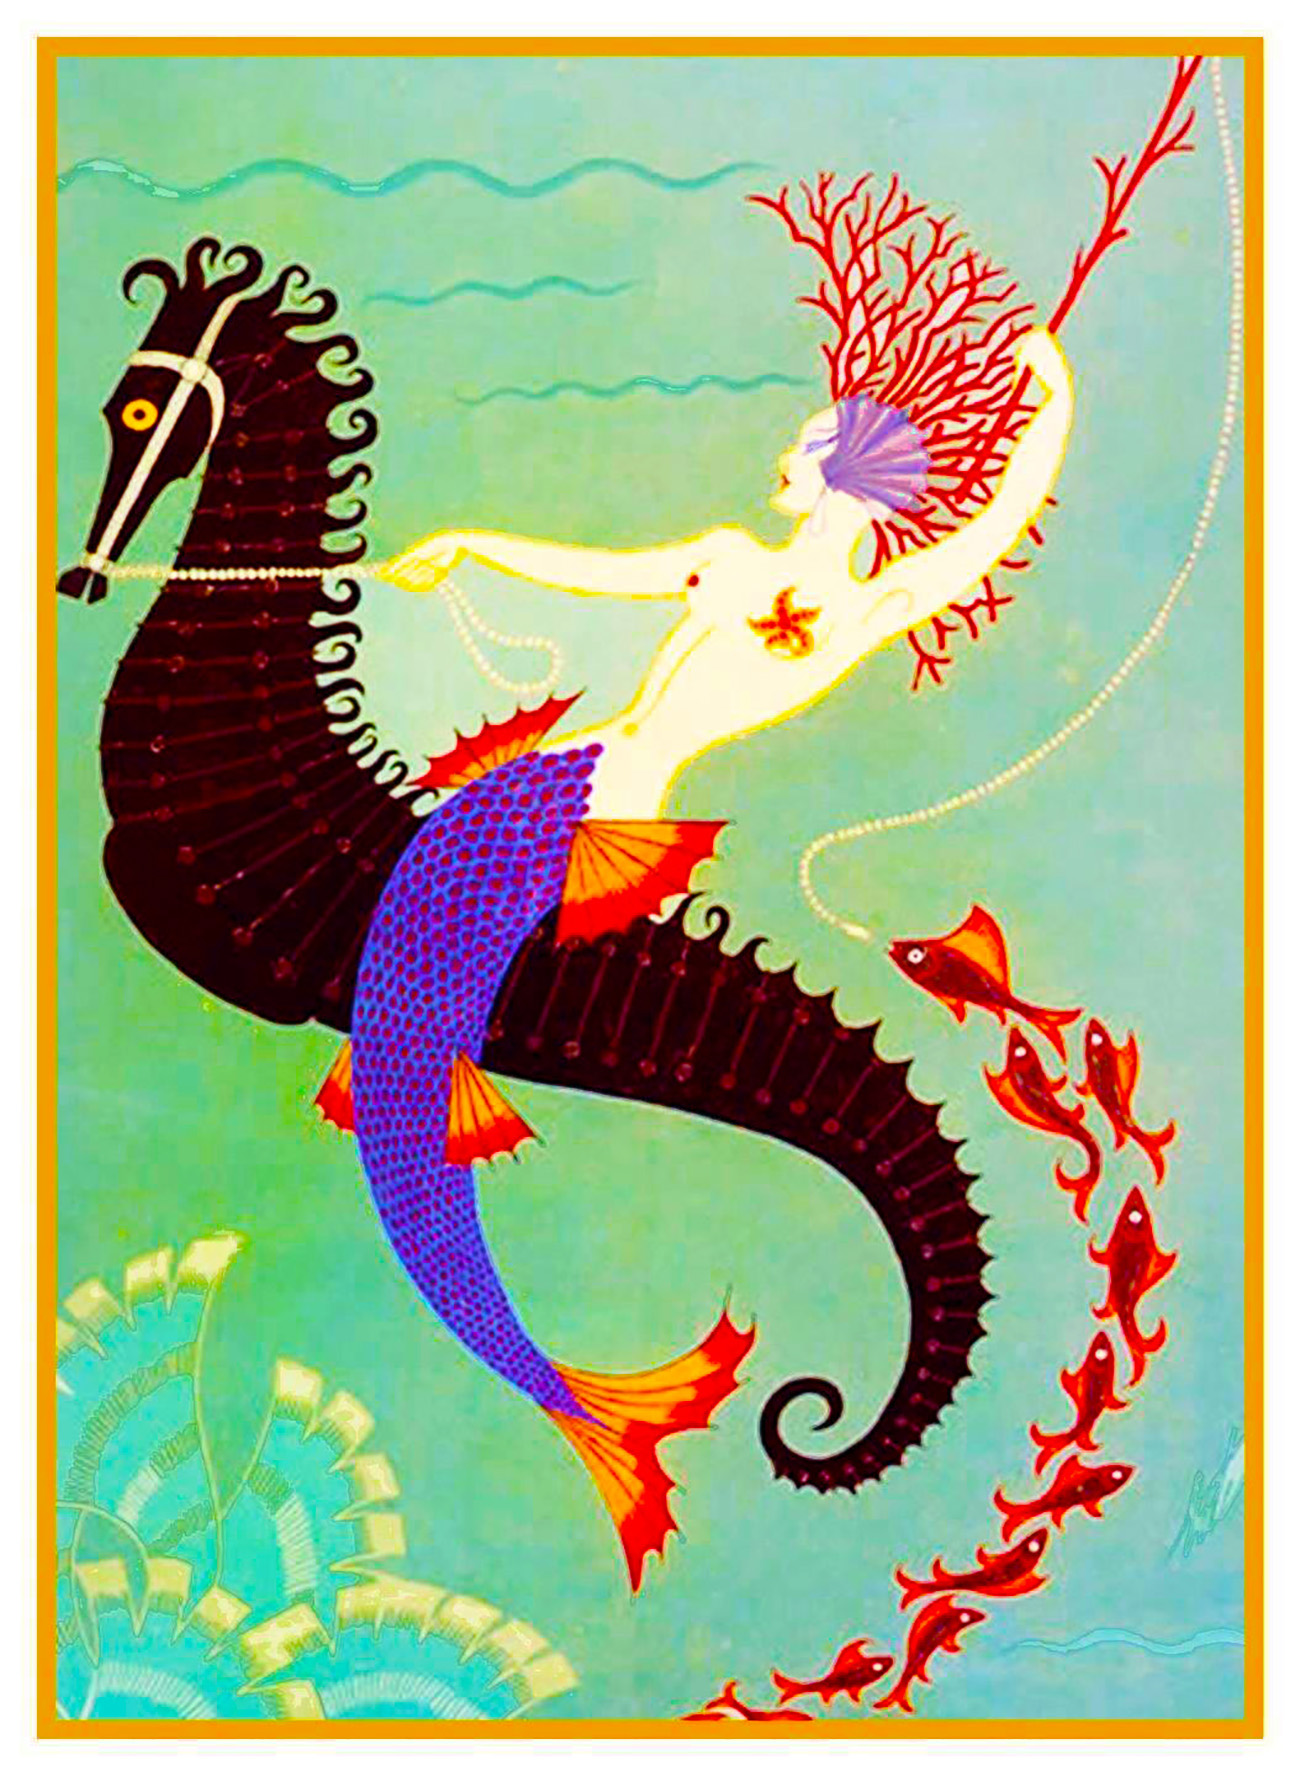 Mermaid Seahorse By Erte Romain De Tirtoff Counted Cross Stitch Chart Pattern 769572914916 Ebay